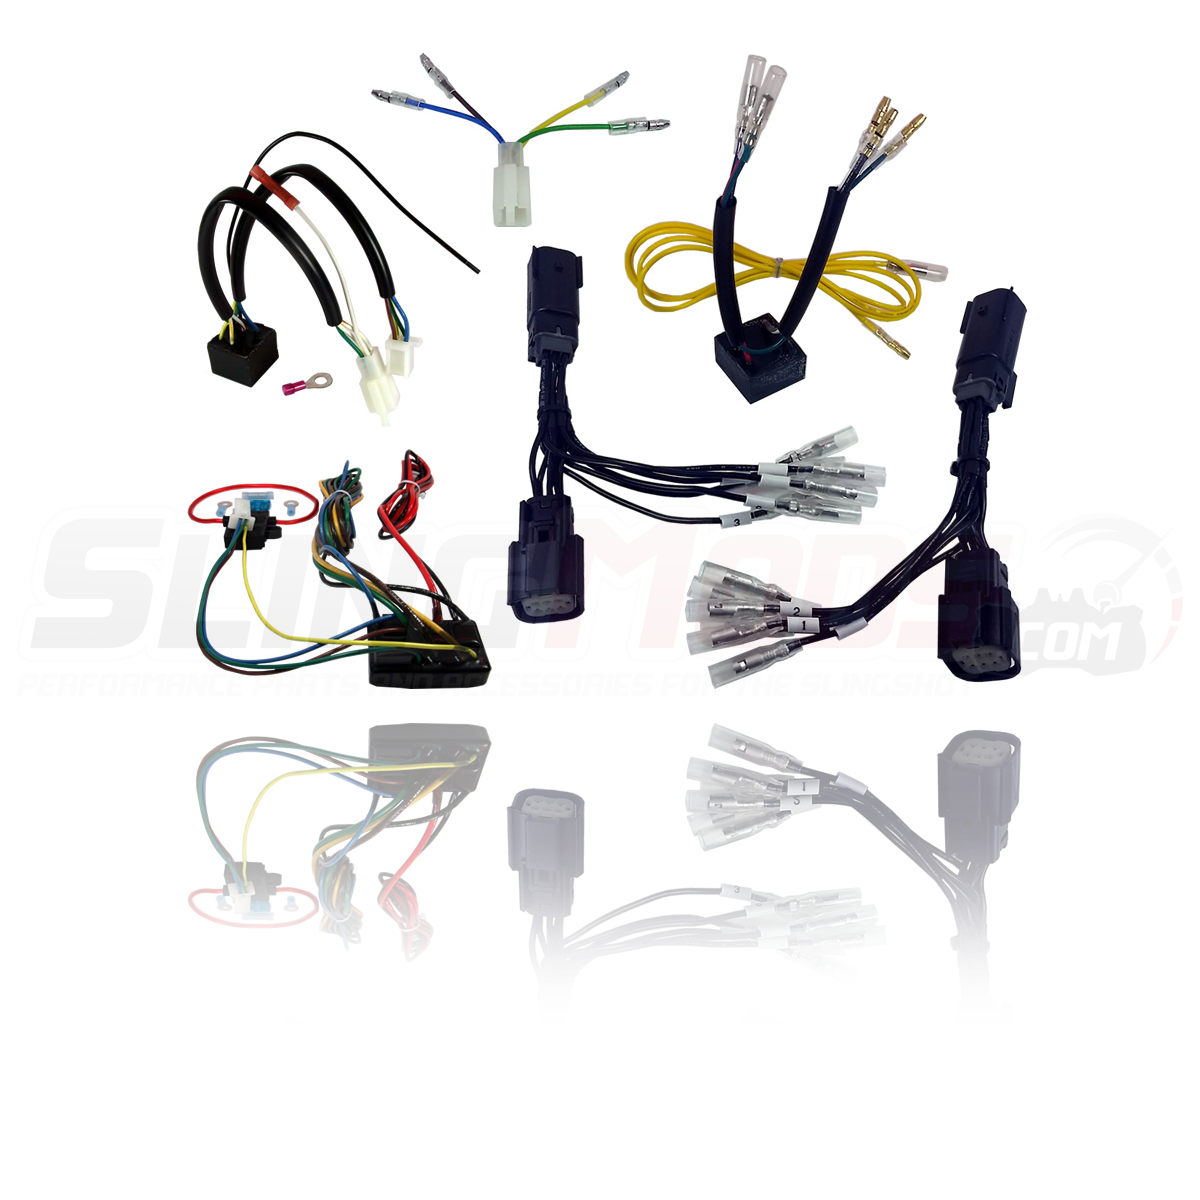 polaris slingshot trailer harness electrical connection trailer hitch wiring harness for the polaris slingshot